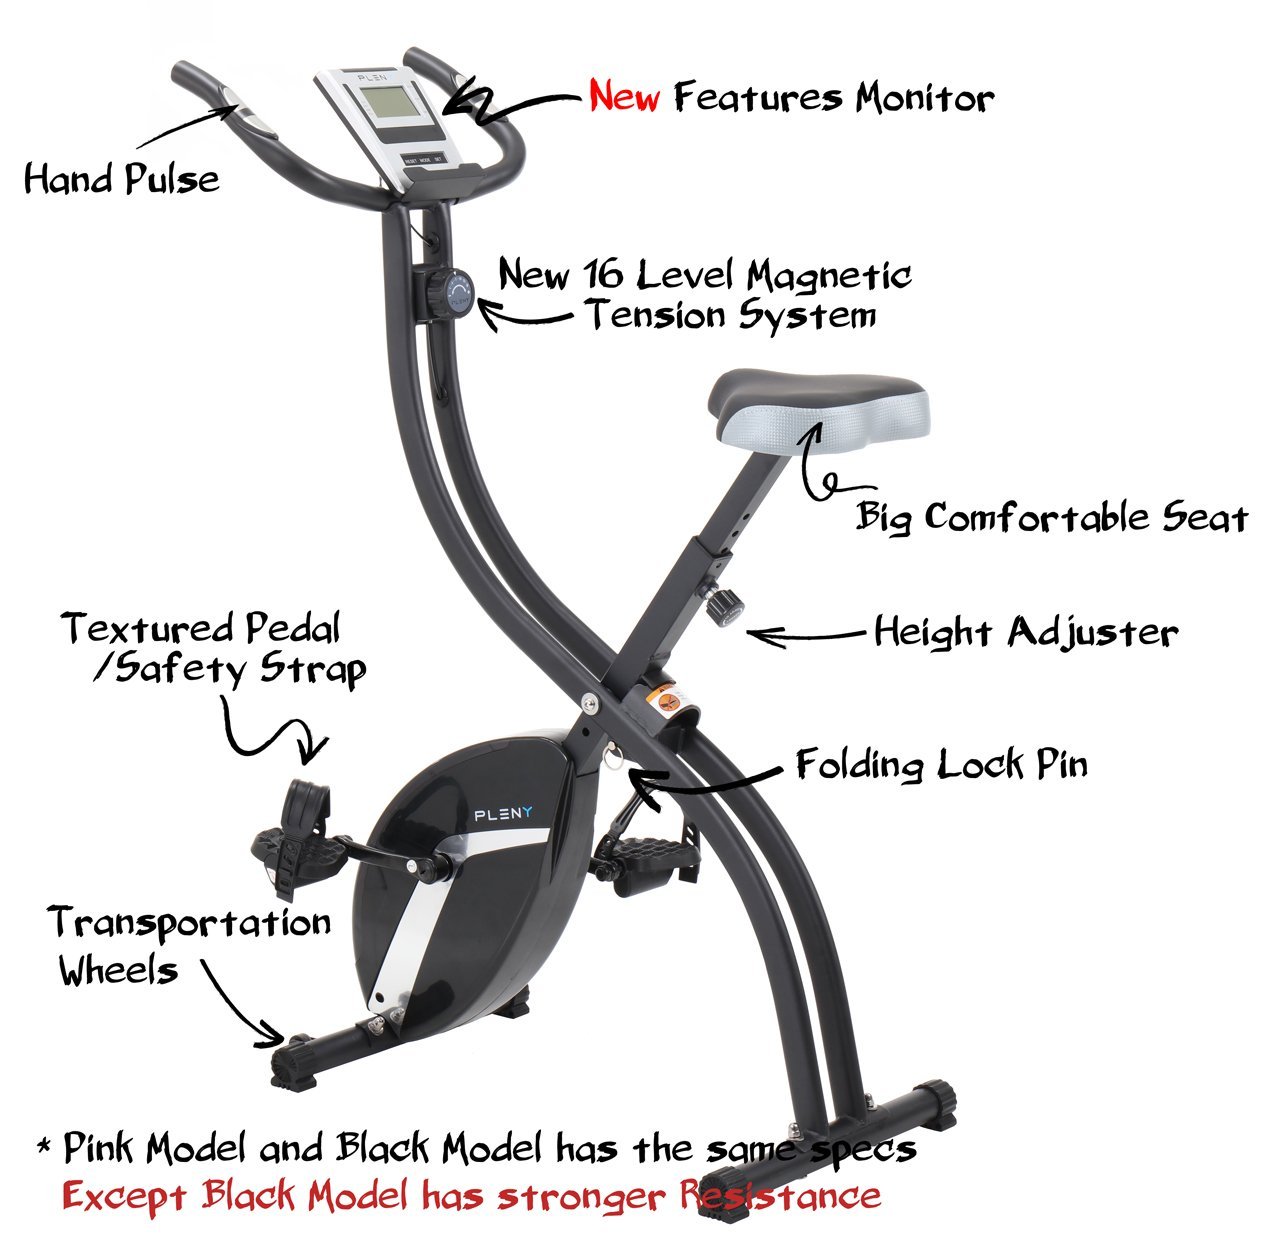 PLENY Foldable Upright Stationary Exercise Bike with 16 Level Resistance, New Exercise Monitor with Phone/Tablet Holder (Pink) by PLENY (Image #4)